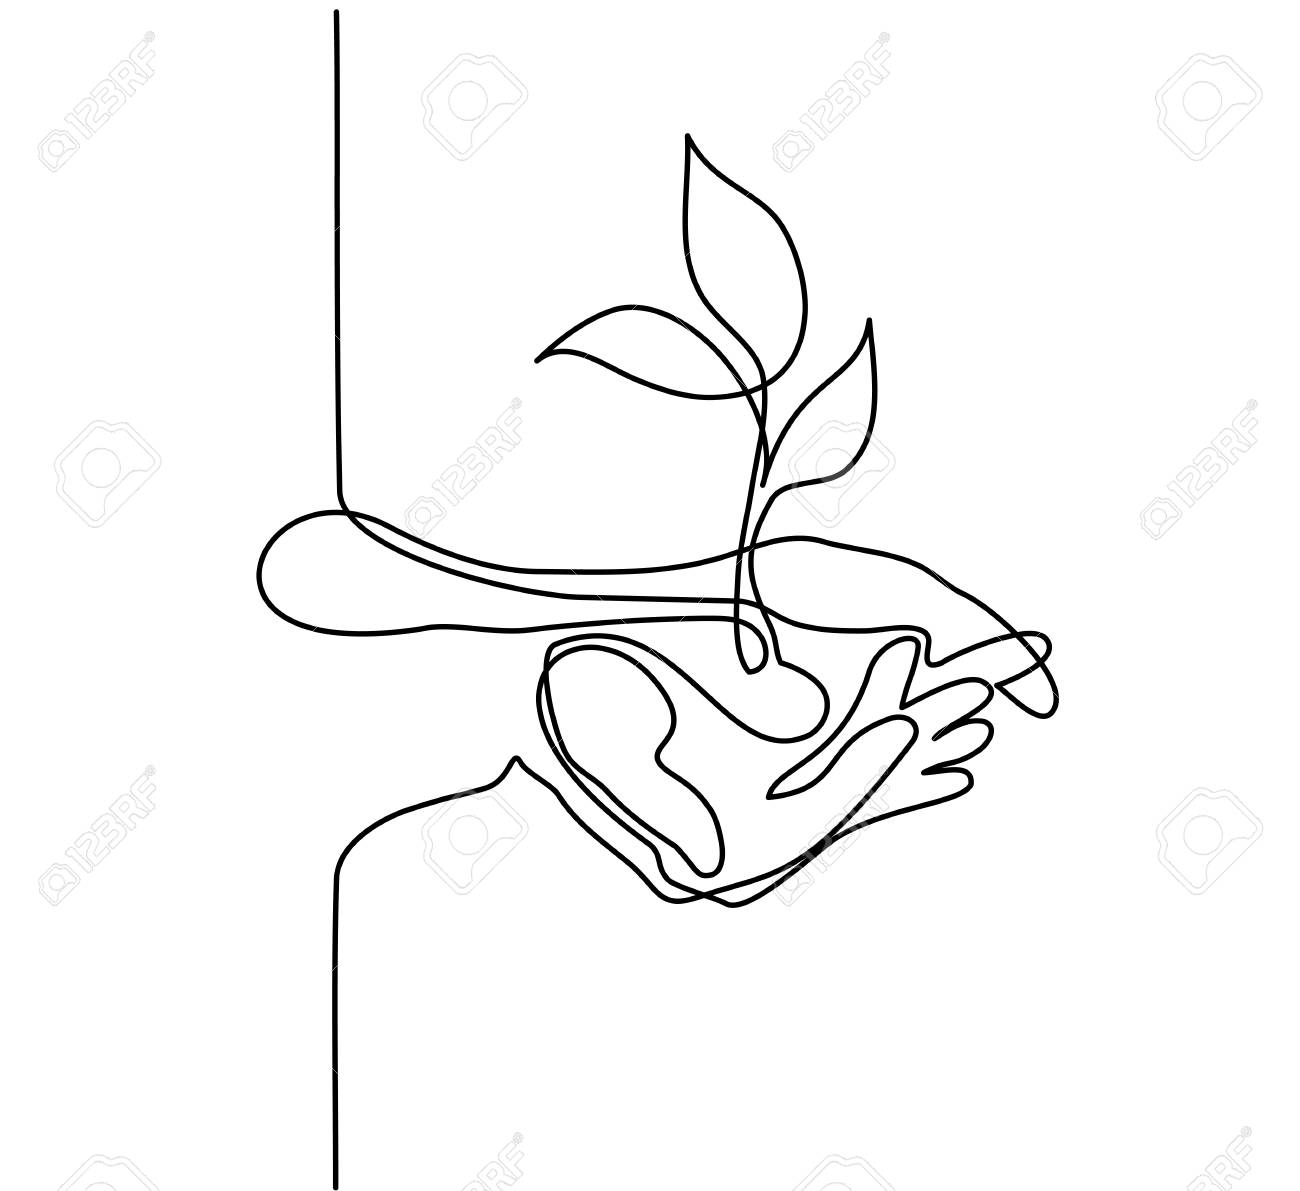 Continuous line drawing. Hands palms together with growth plant. Vector illustration. - 85388978